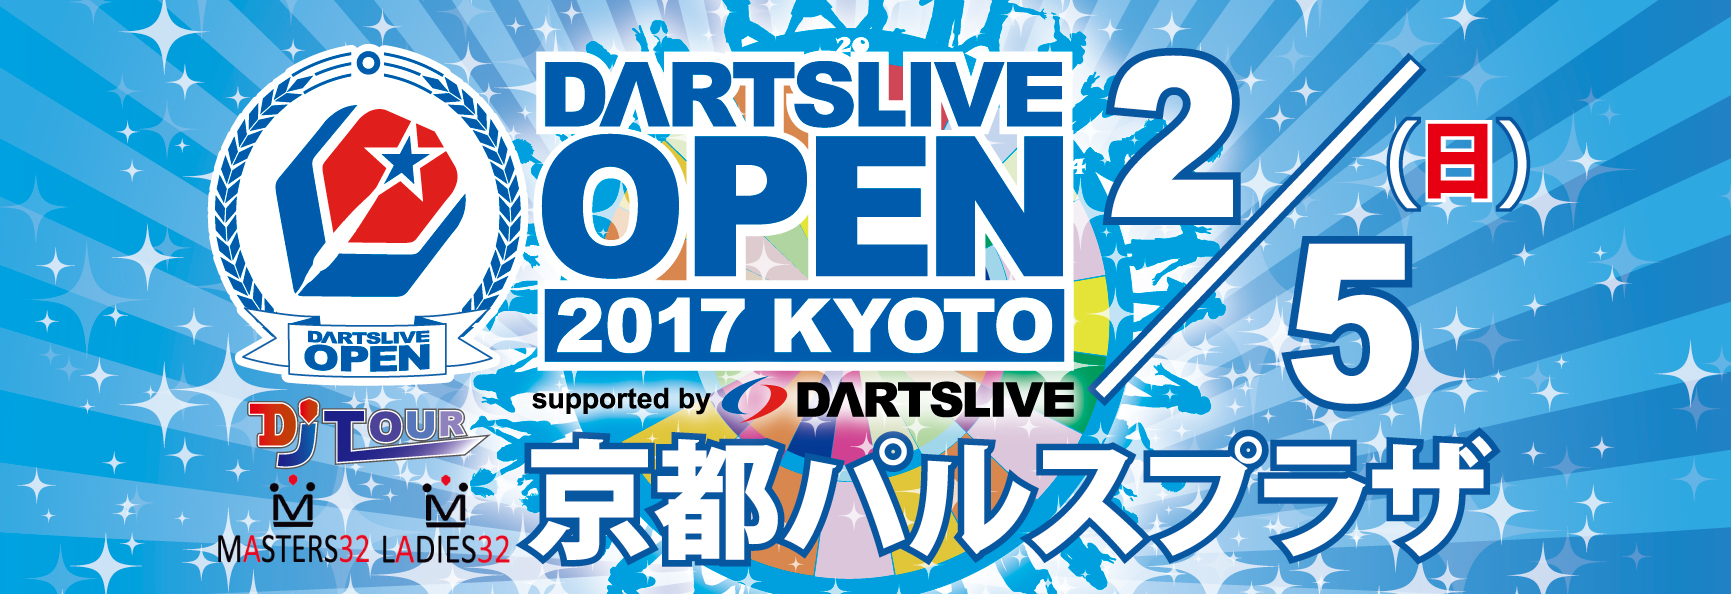 DARTSLIVE OPEN 2017 KYOTO